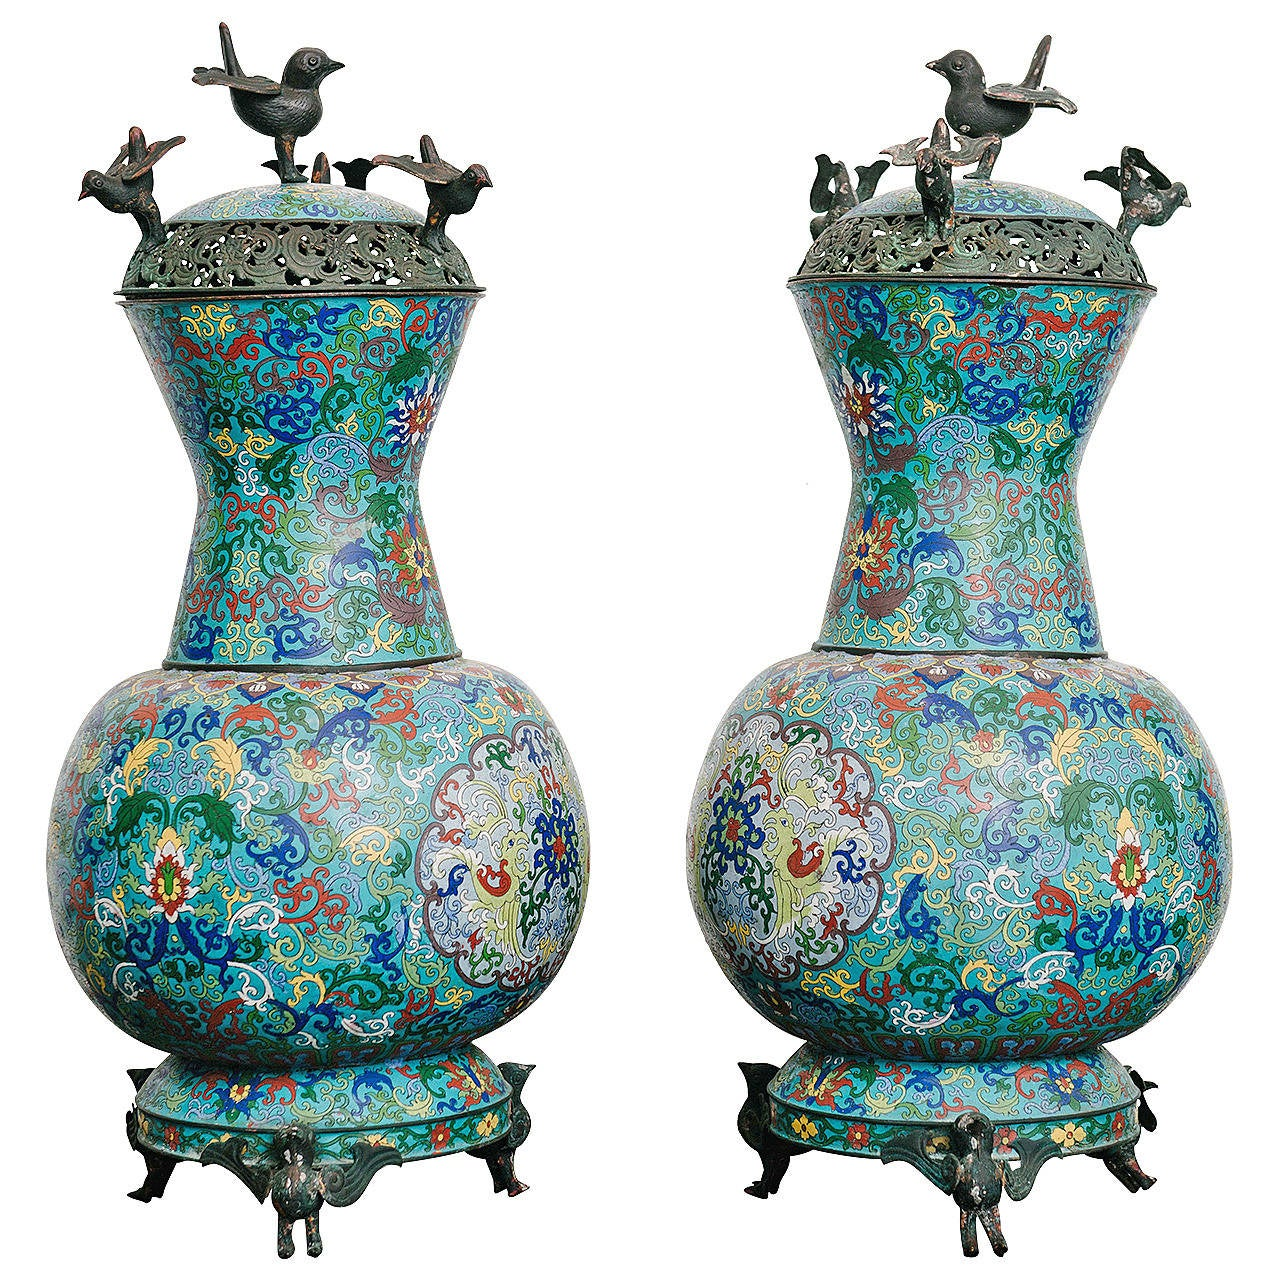 Pair of 19th Century Chinese Bronze Cloisonné Urns